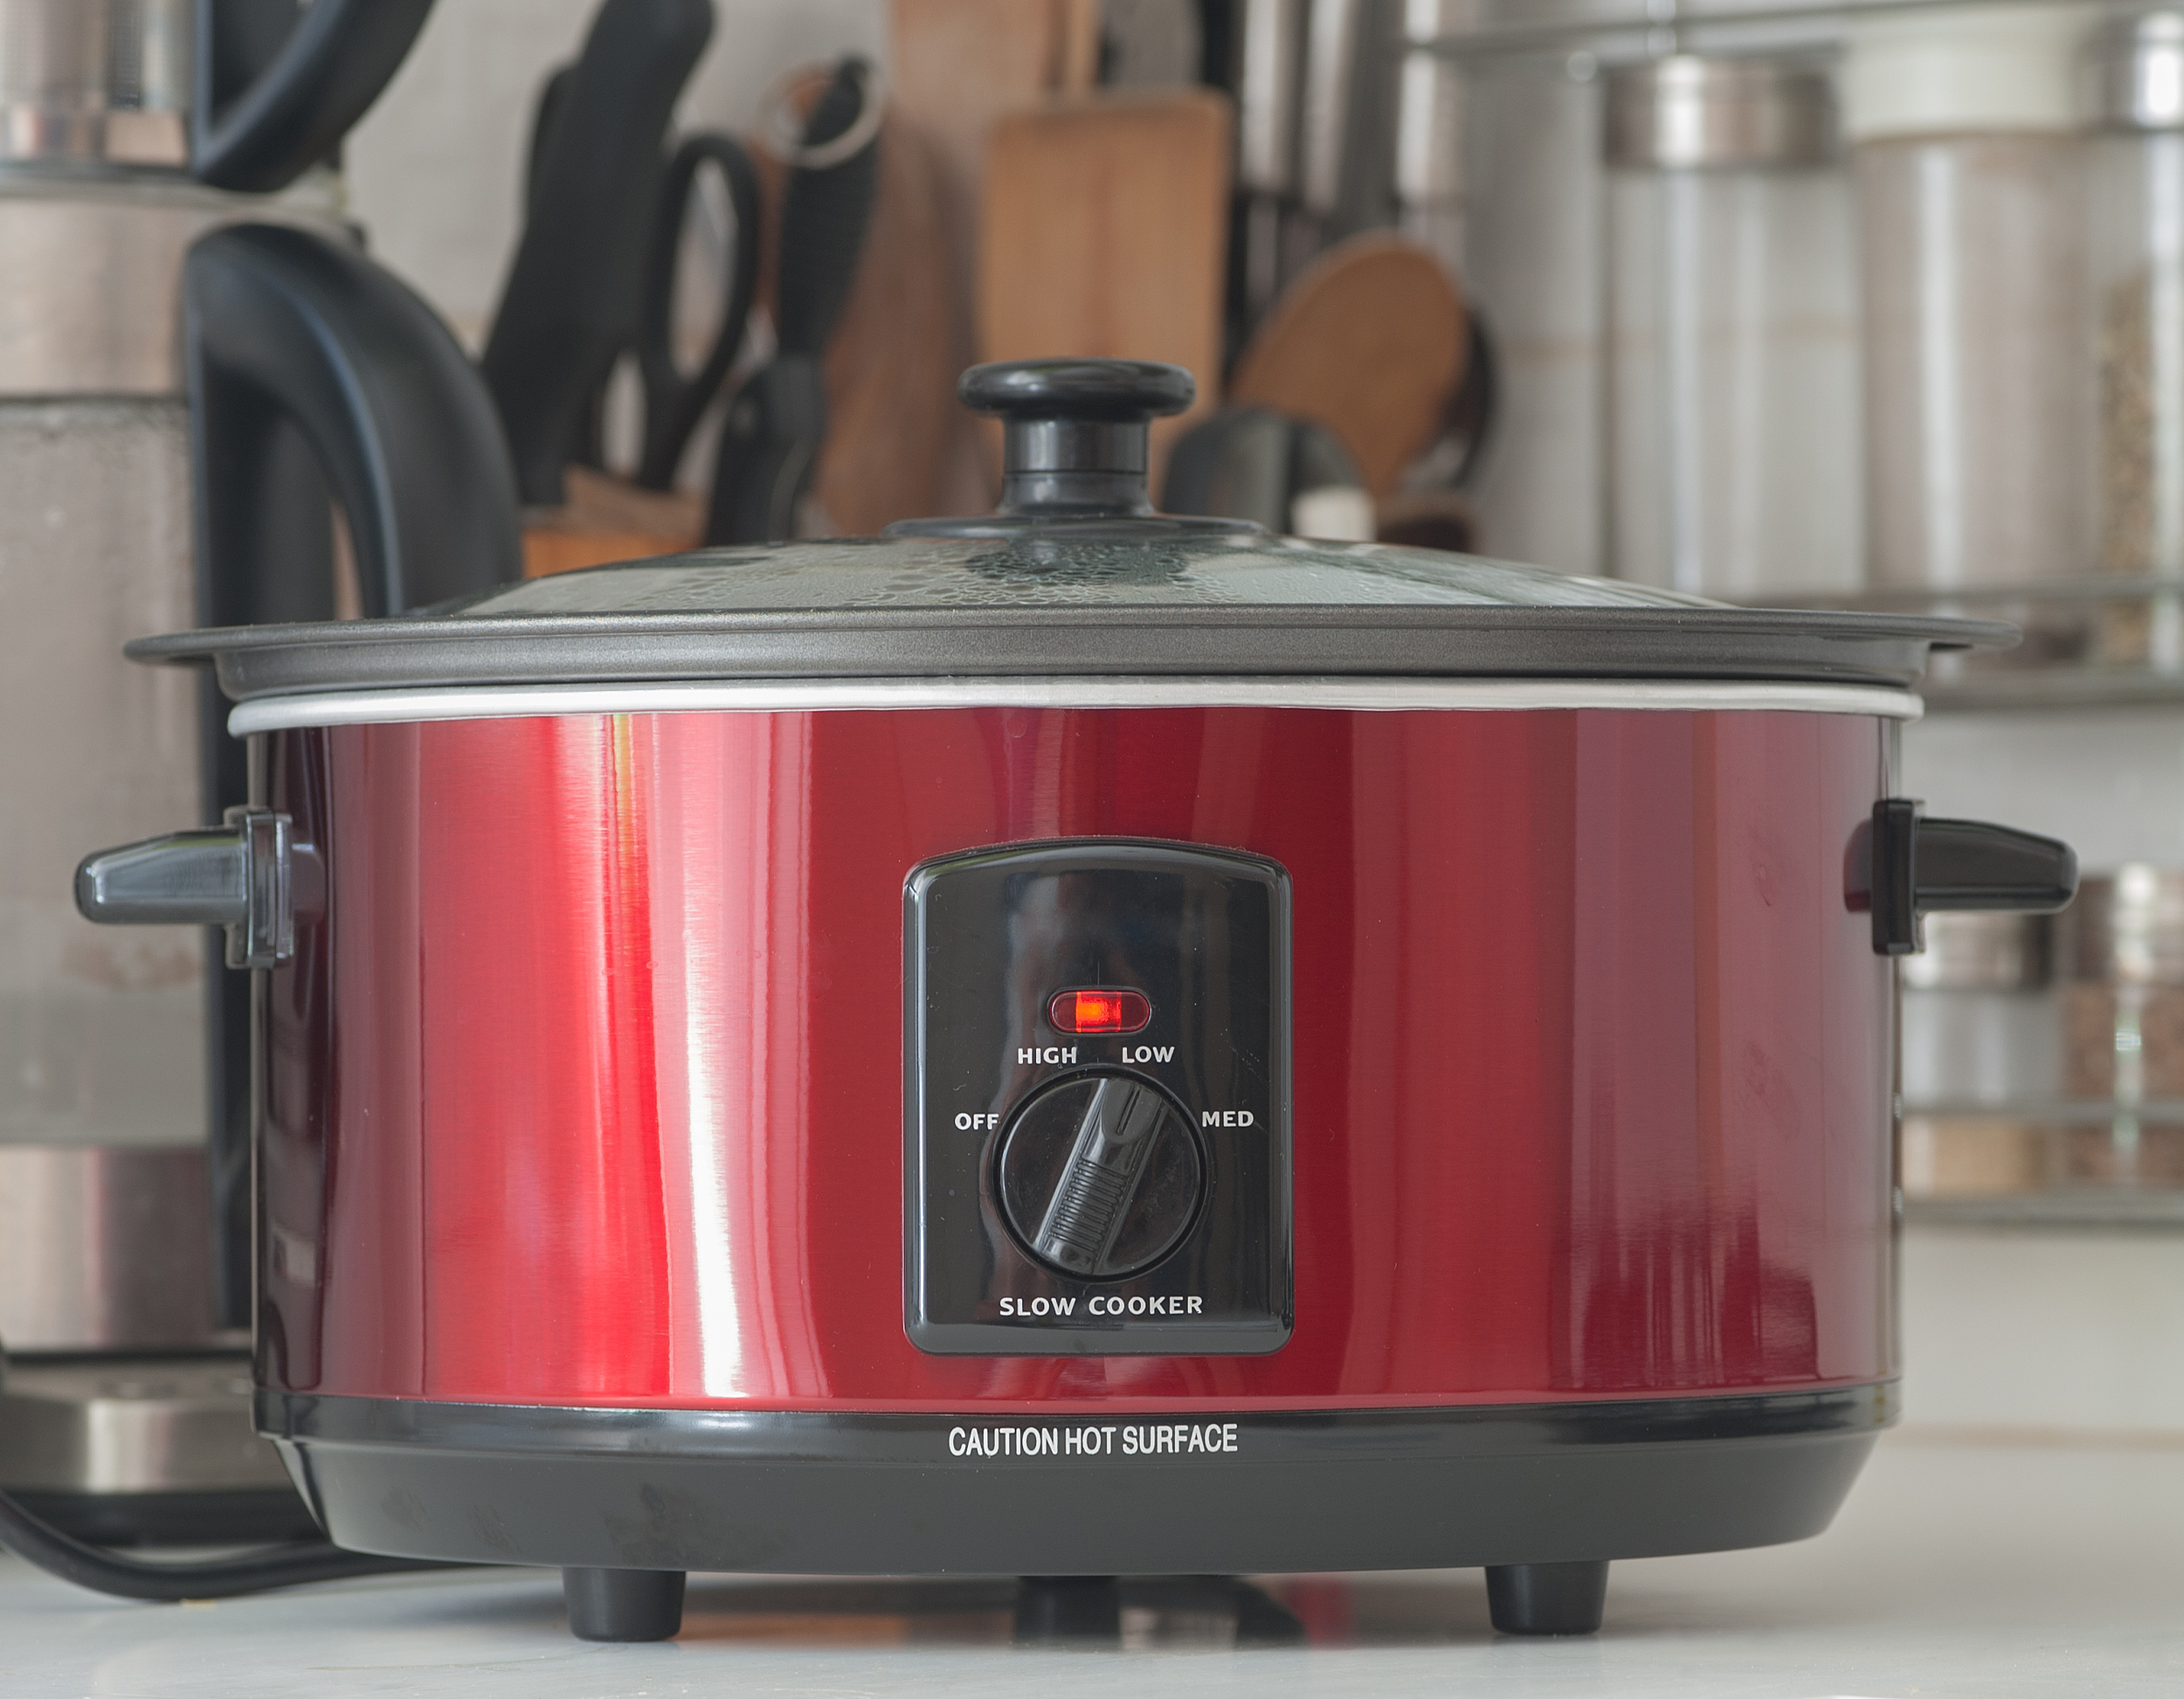 6 things everyone who uses a slow cooker should know